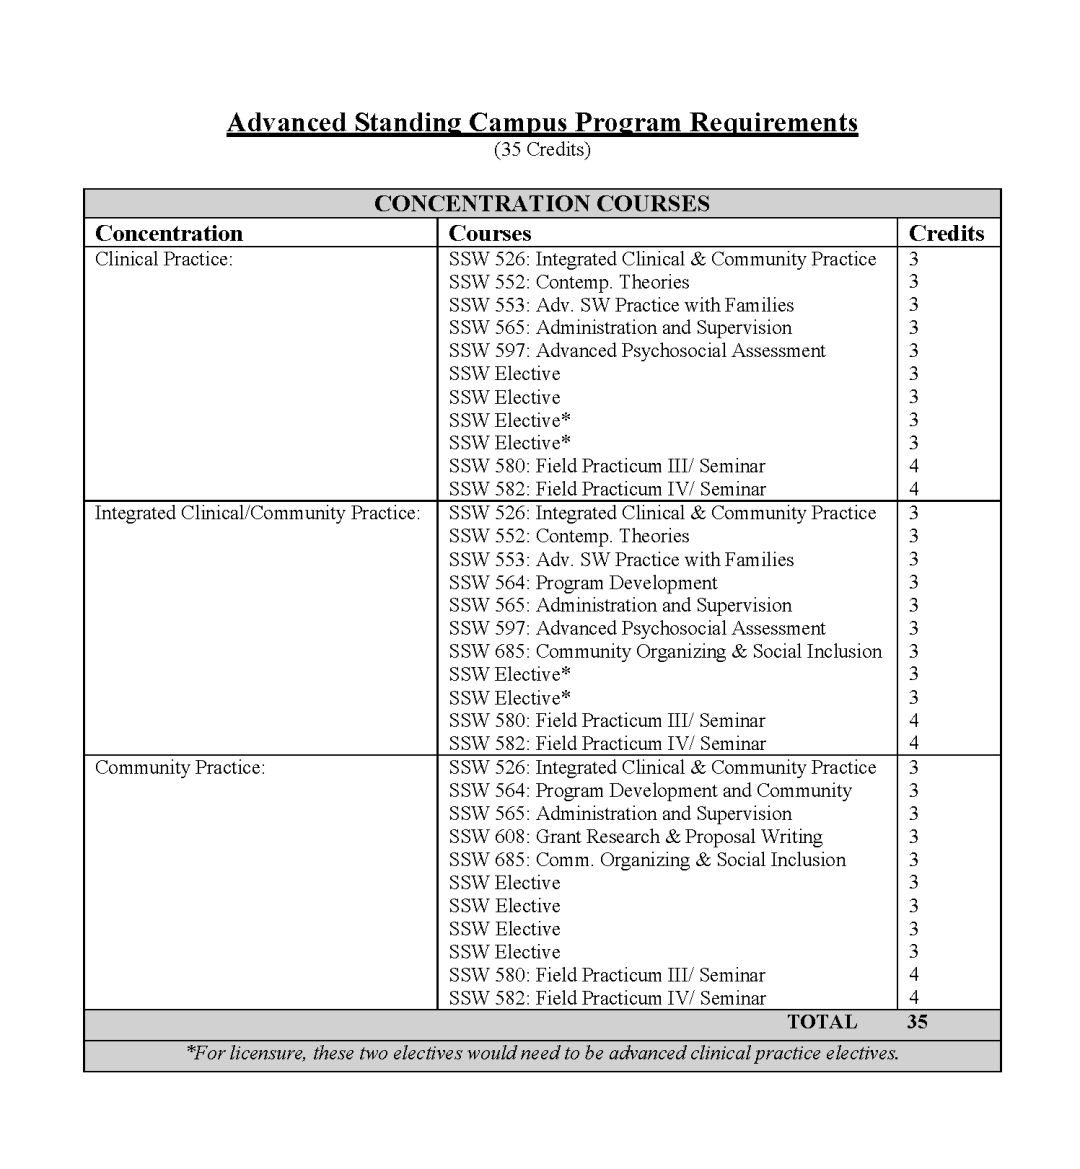 Advanced Standing Campus Program Requirements_Page_1